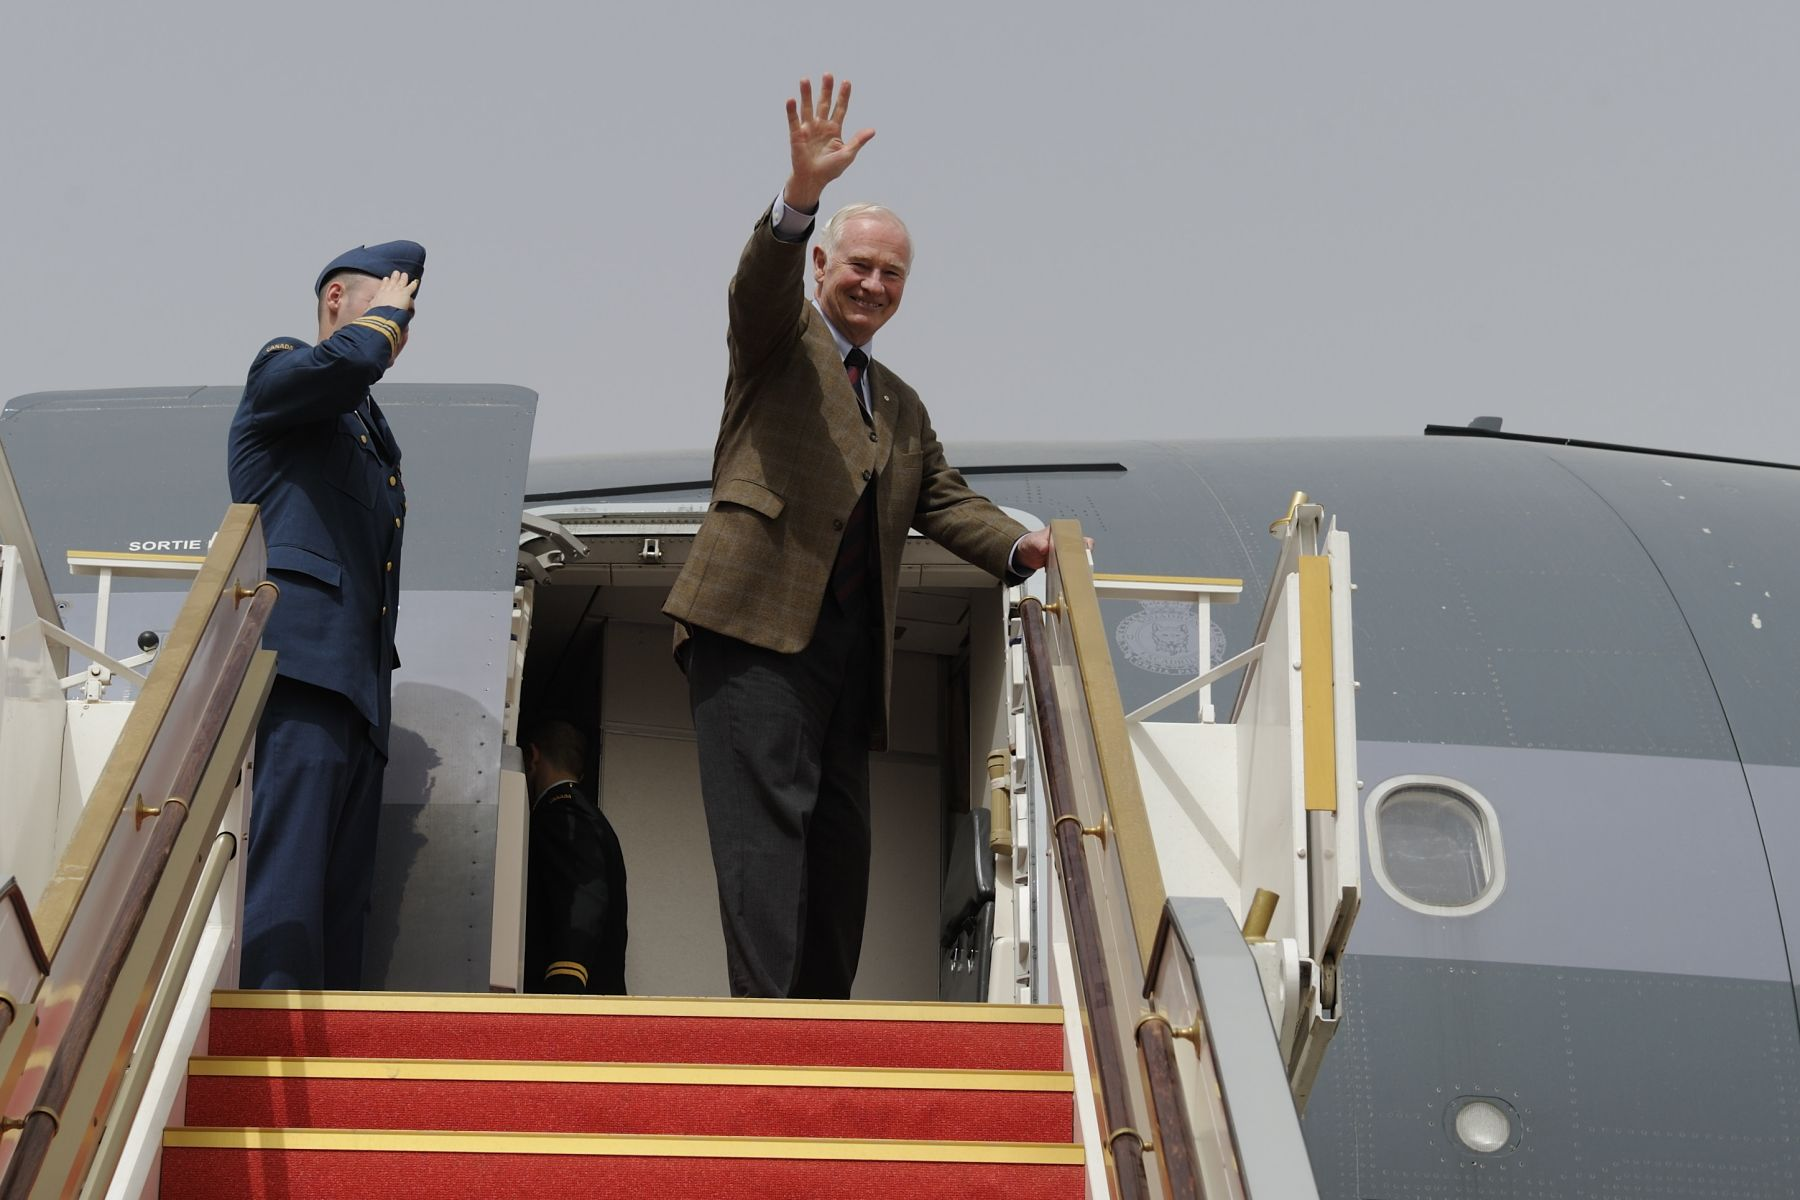 Their Excellencies departed Kuwait on February 27, 2011.